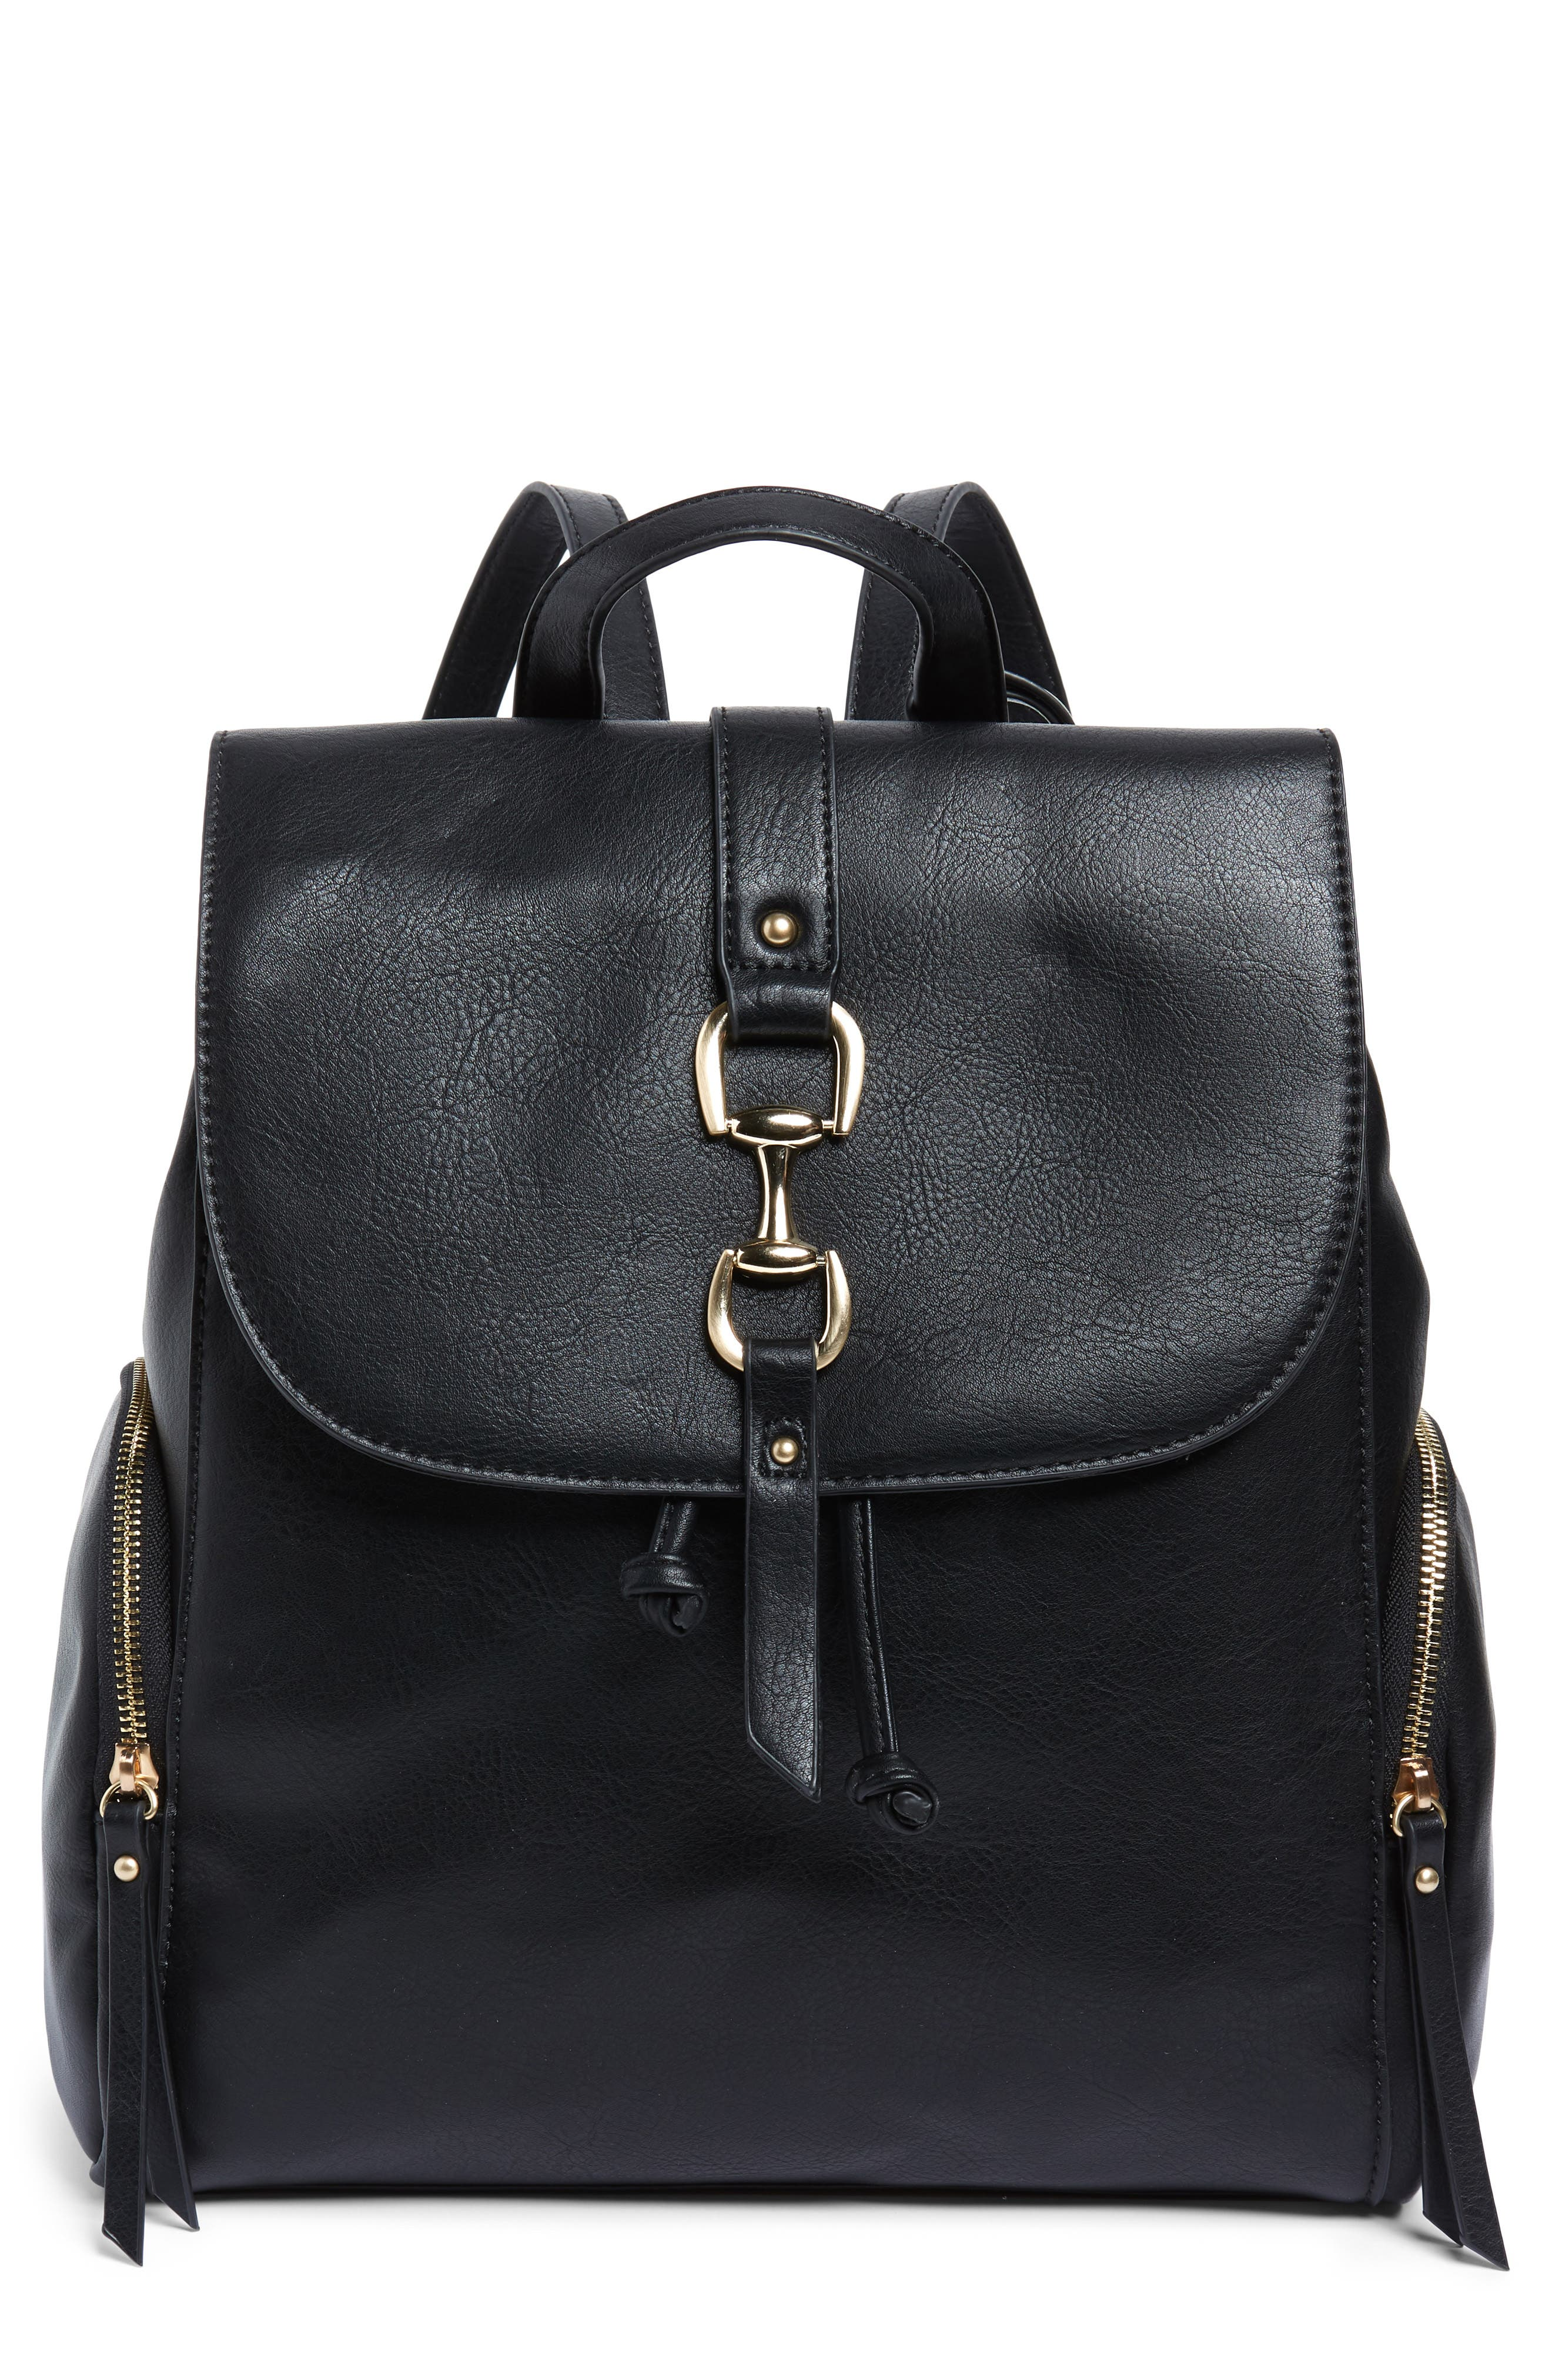 Marah Faux Leather Backpack,                             Main thumbnail 1, color,                             BLACK